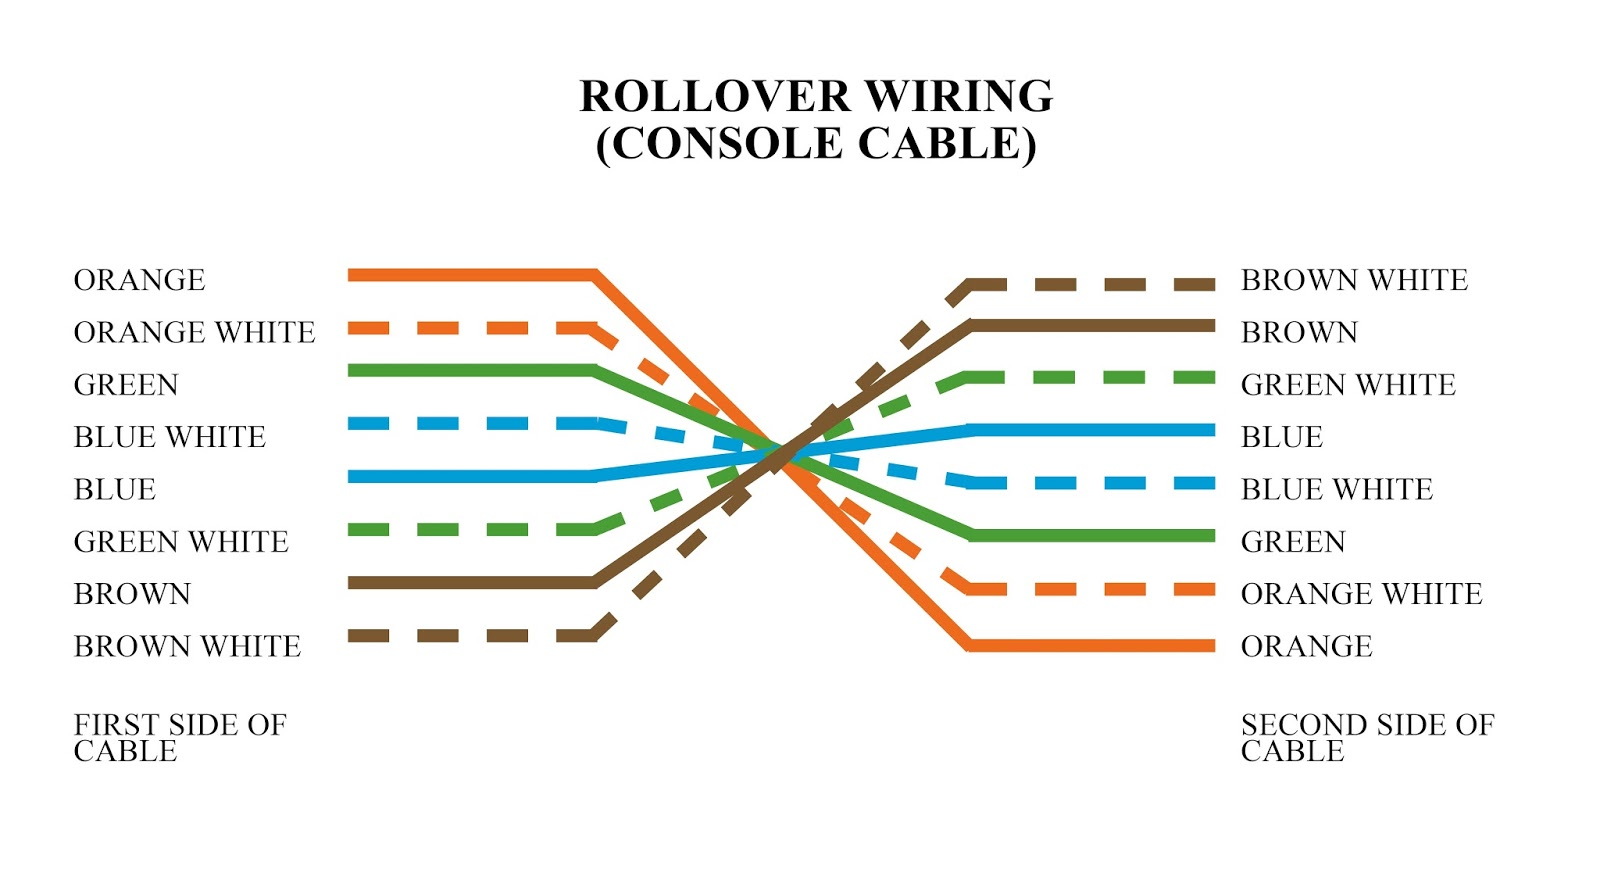 Straight Through Serial Cable Wiring Diagram Ethernet Wire Rollover 22 Images